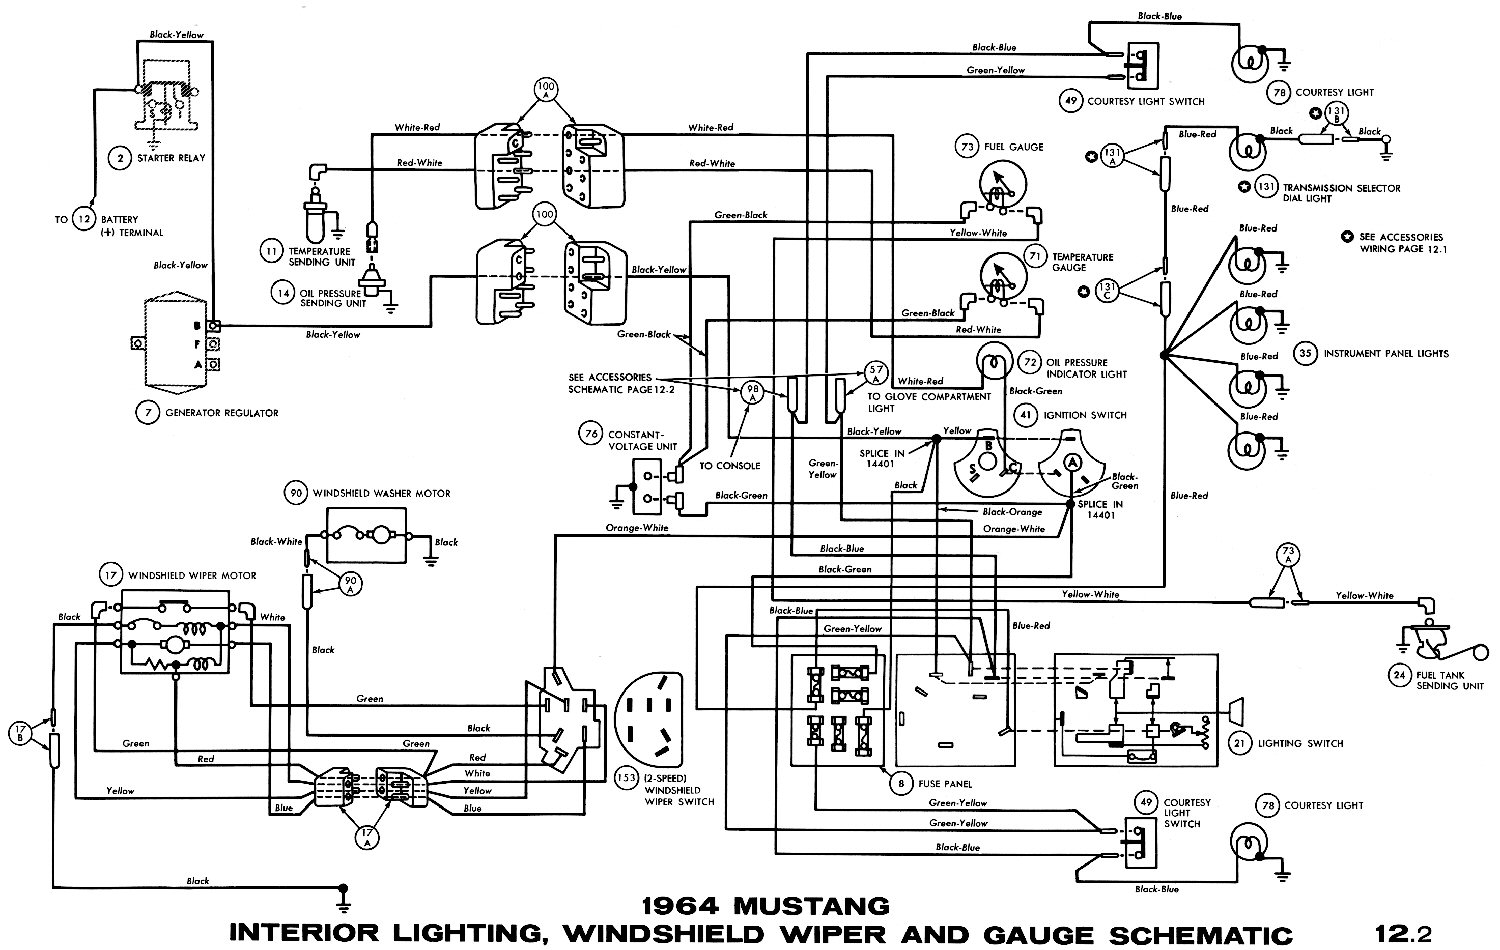 1964k 1966 mustang wiring diagram 1967 mustang wiring schematic \u2022 wiring 65 mustang dash wiring diagram at bayanpartner.co